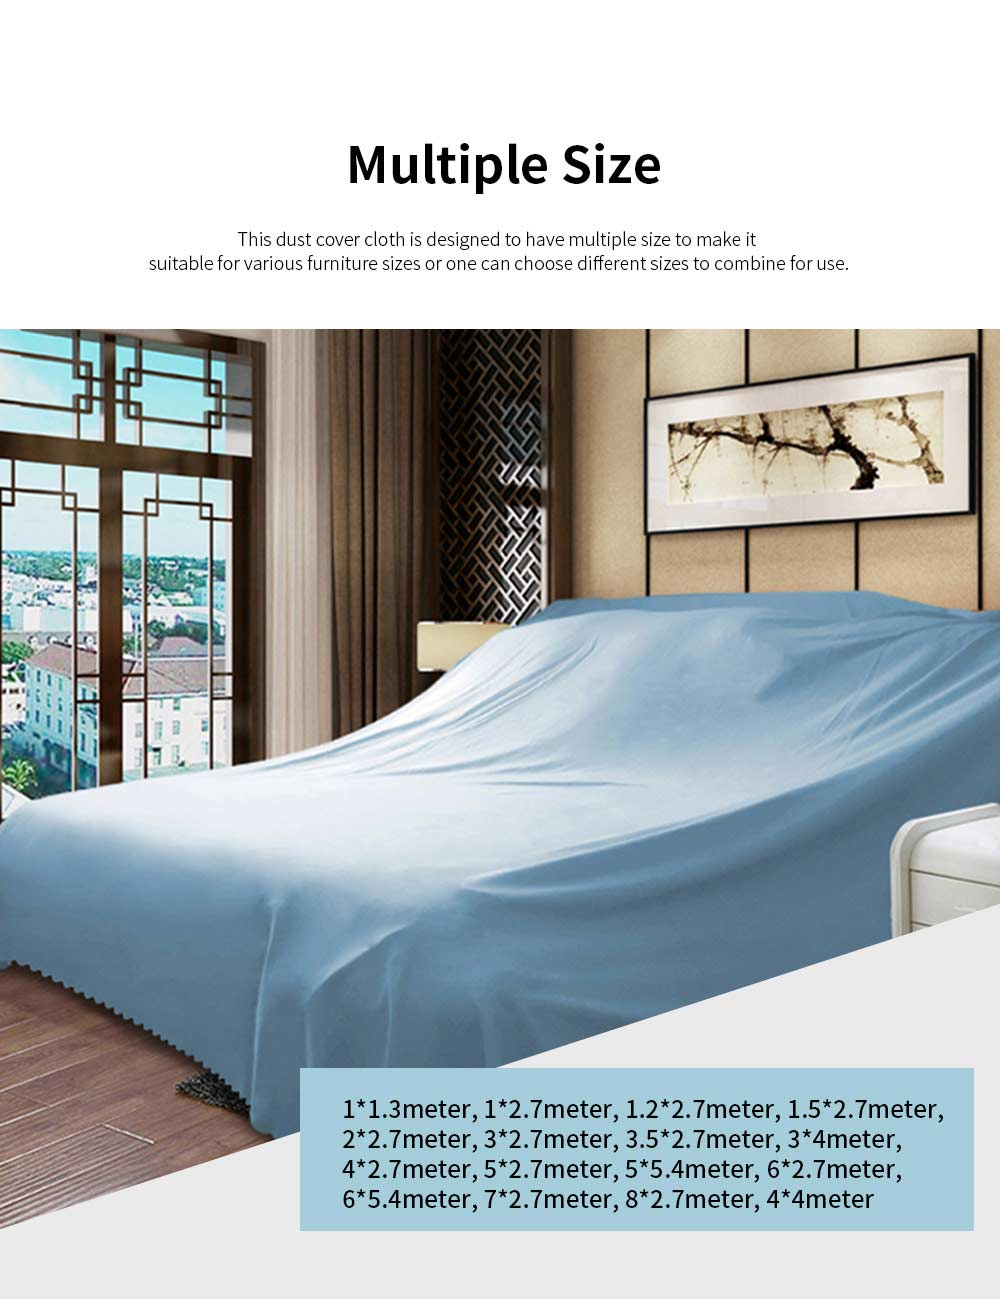 Pure Dust Cover for Family Use Fashionable Durable Dust Cloth Large Size Dense Dust Cover Cloth Dedusting Covers 2